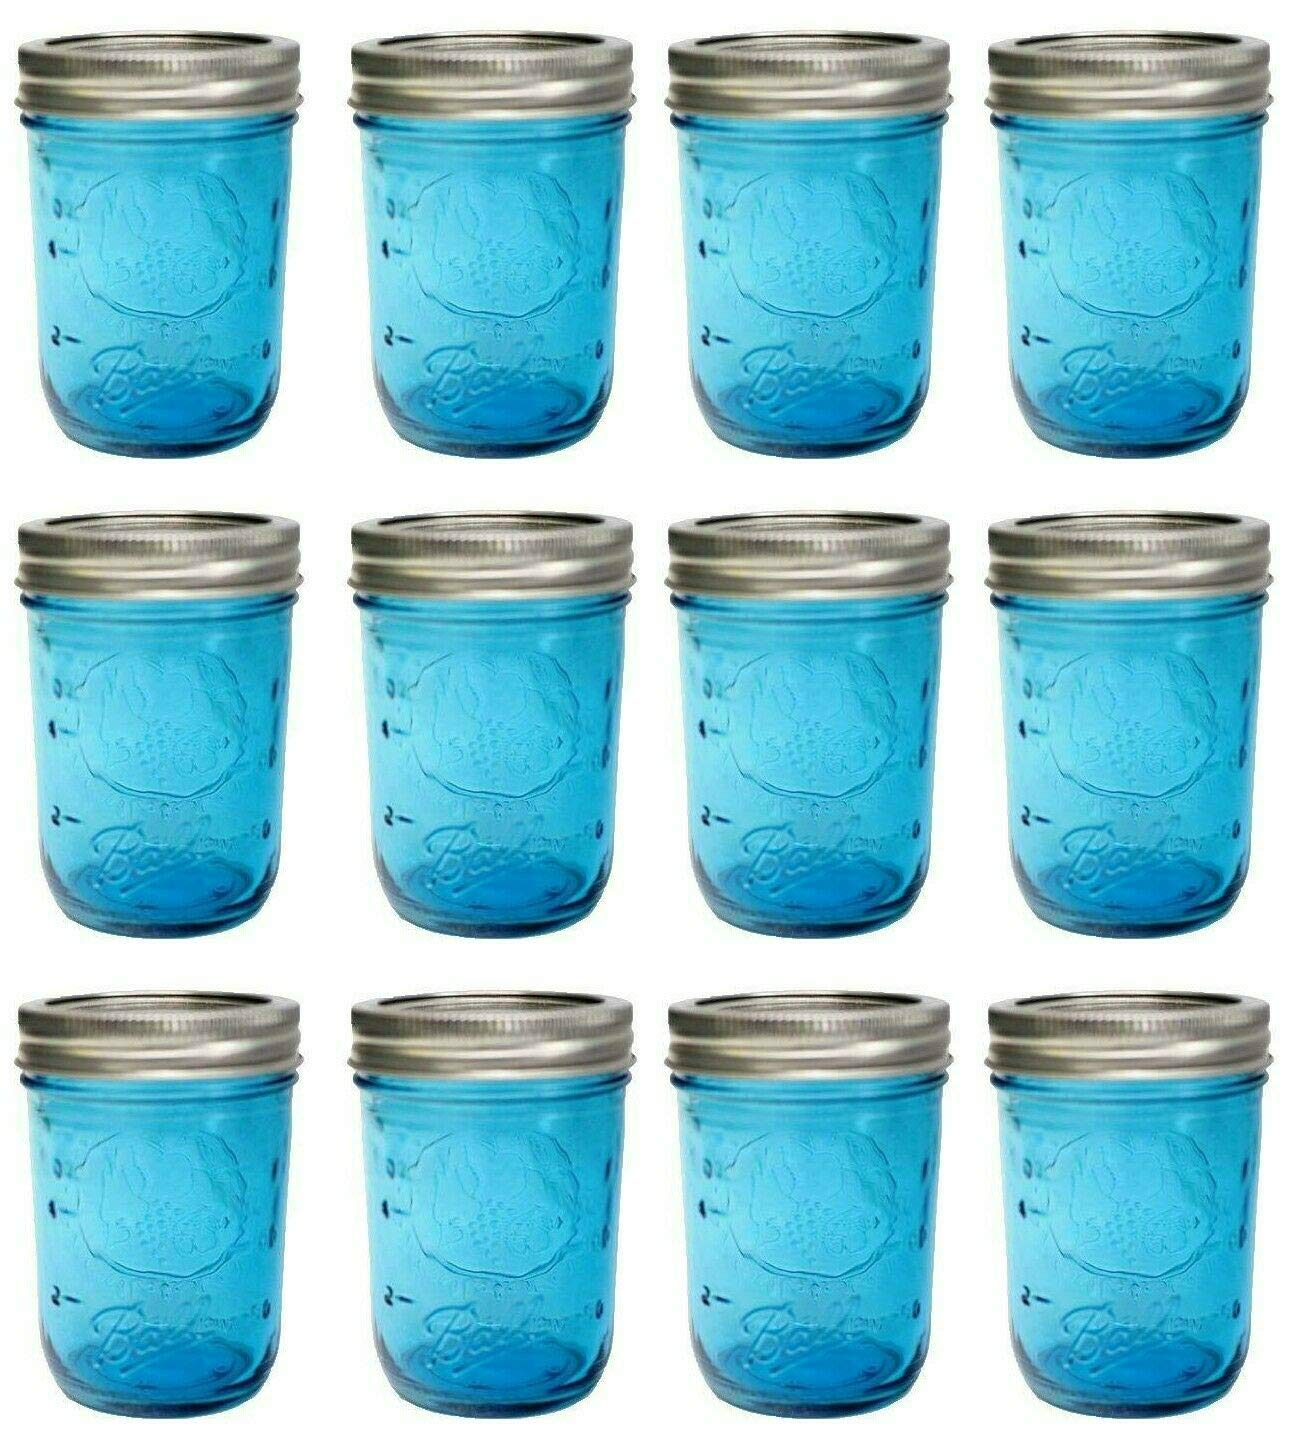 Ball Mason Jar-32 oz. Aqua Blue Glass Ball Collection Elite Color Series Wide Mouth-Set of 12 Jars